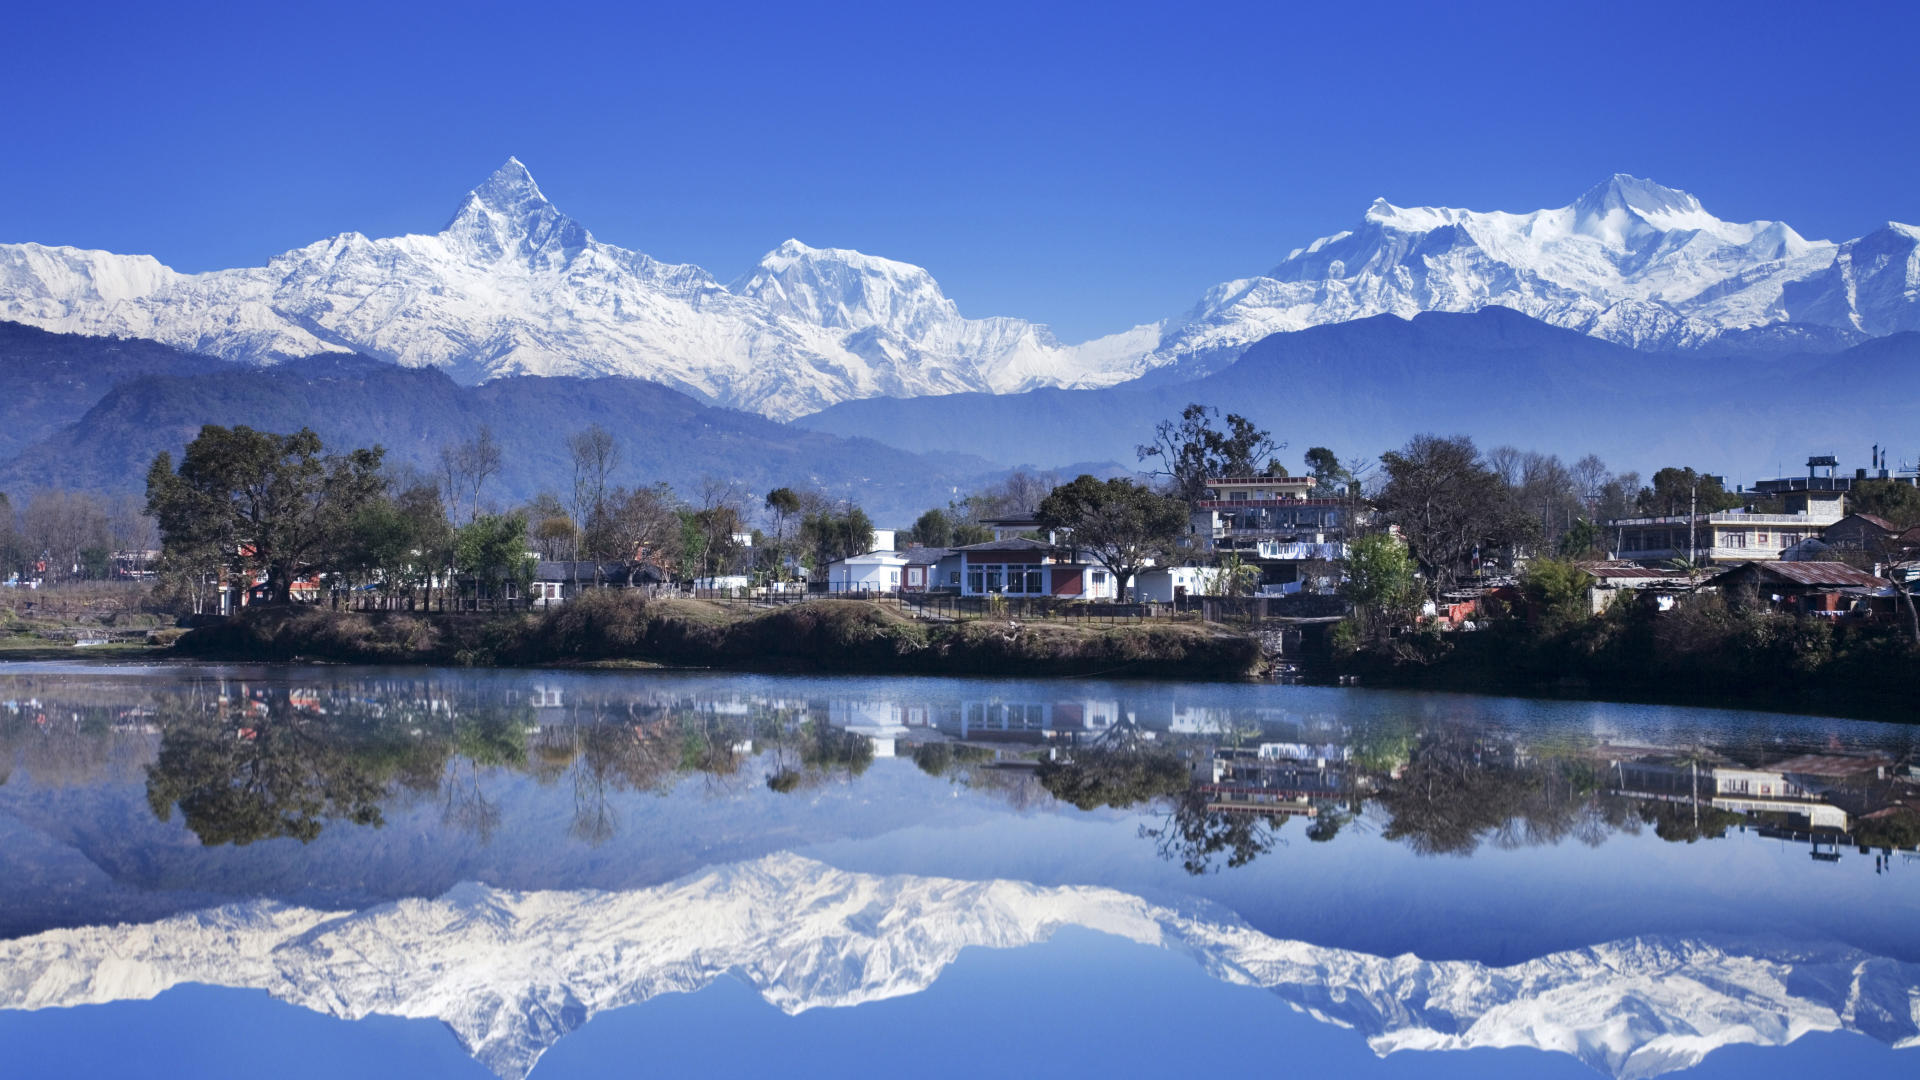 Reflection of mountains in a lake, Fewa Lake, Pokhara, Nepal